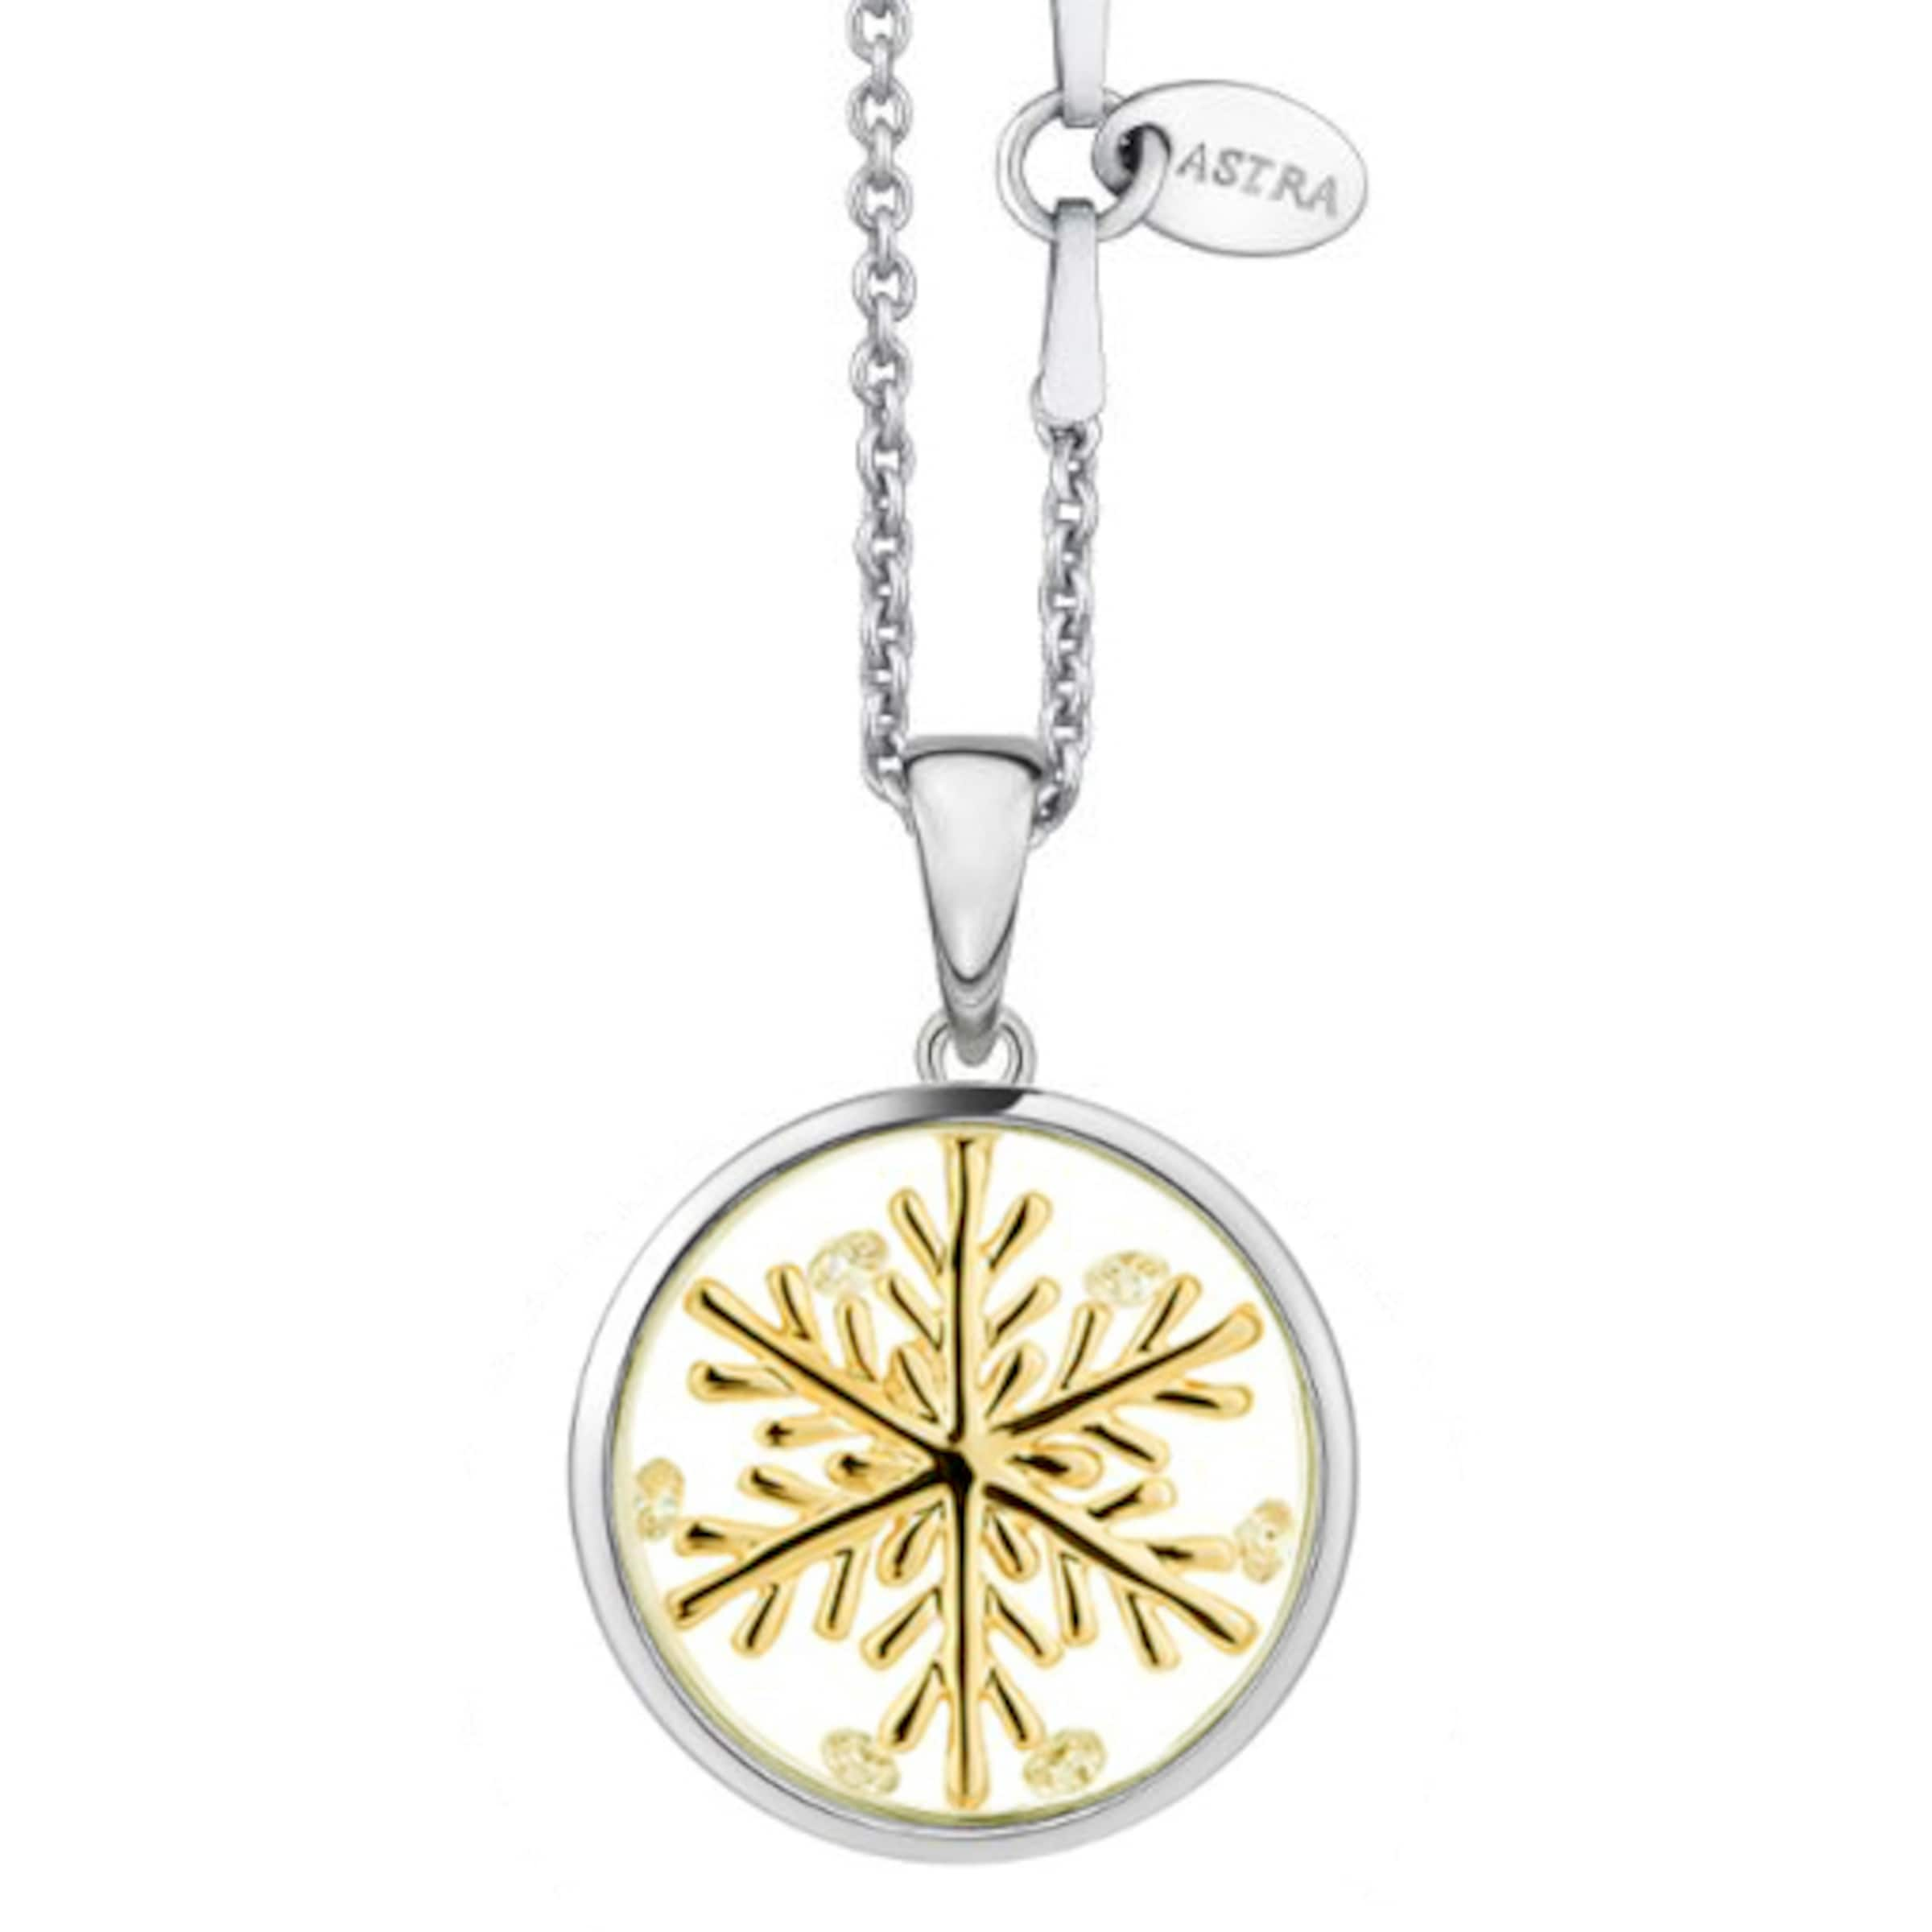 Astra Kette mit Anhänger 'LUCKY SNOWFLAKE' in gold / silber